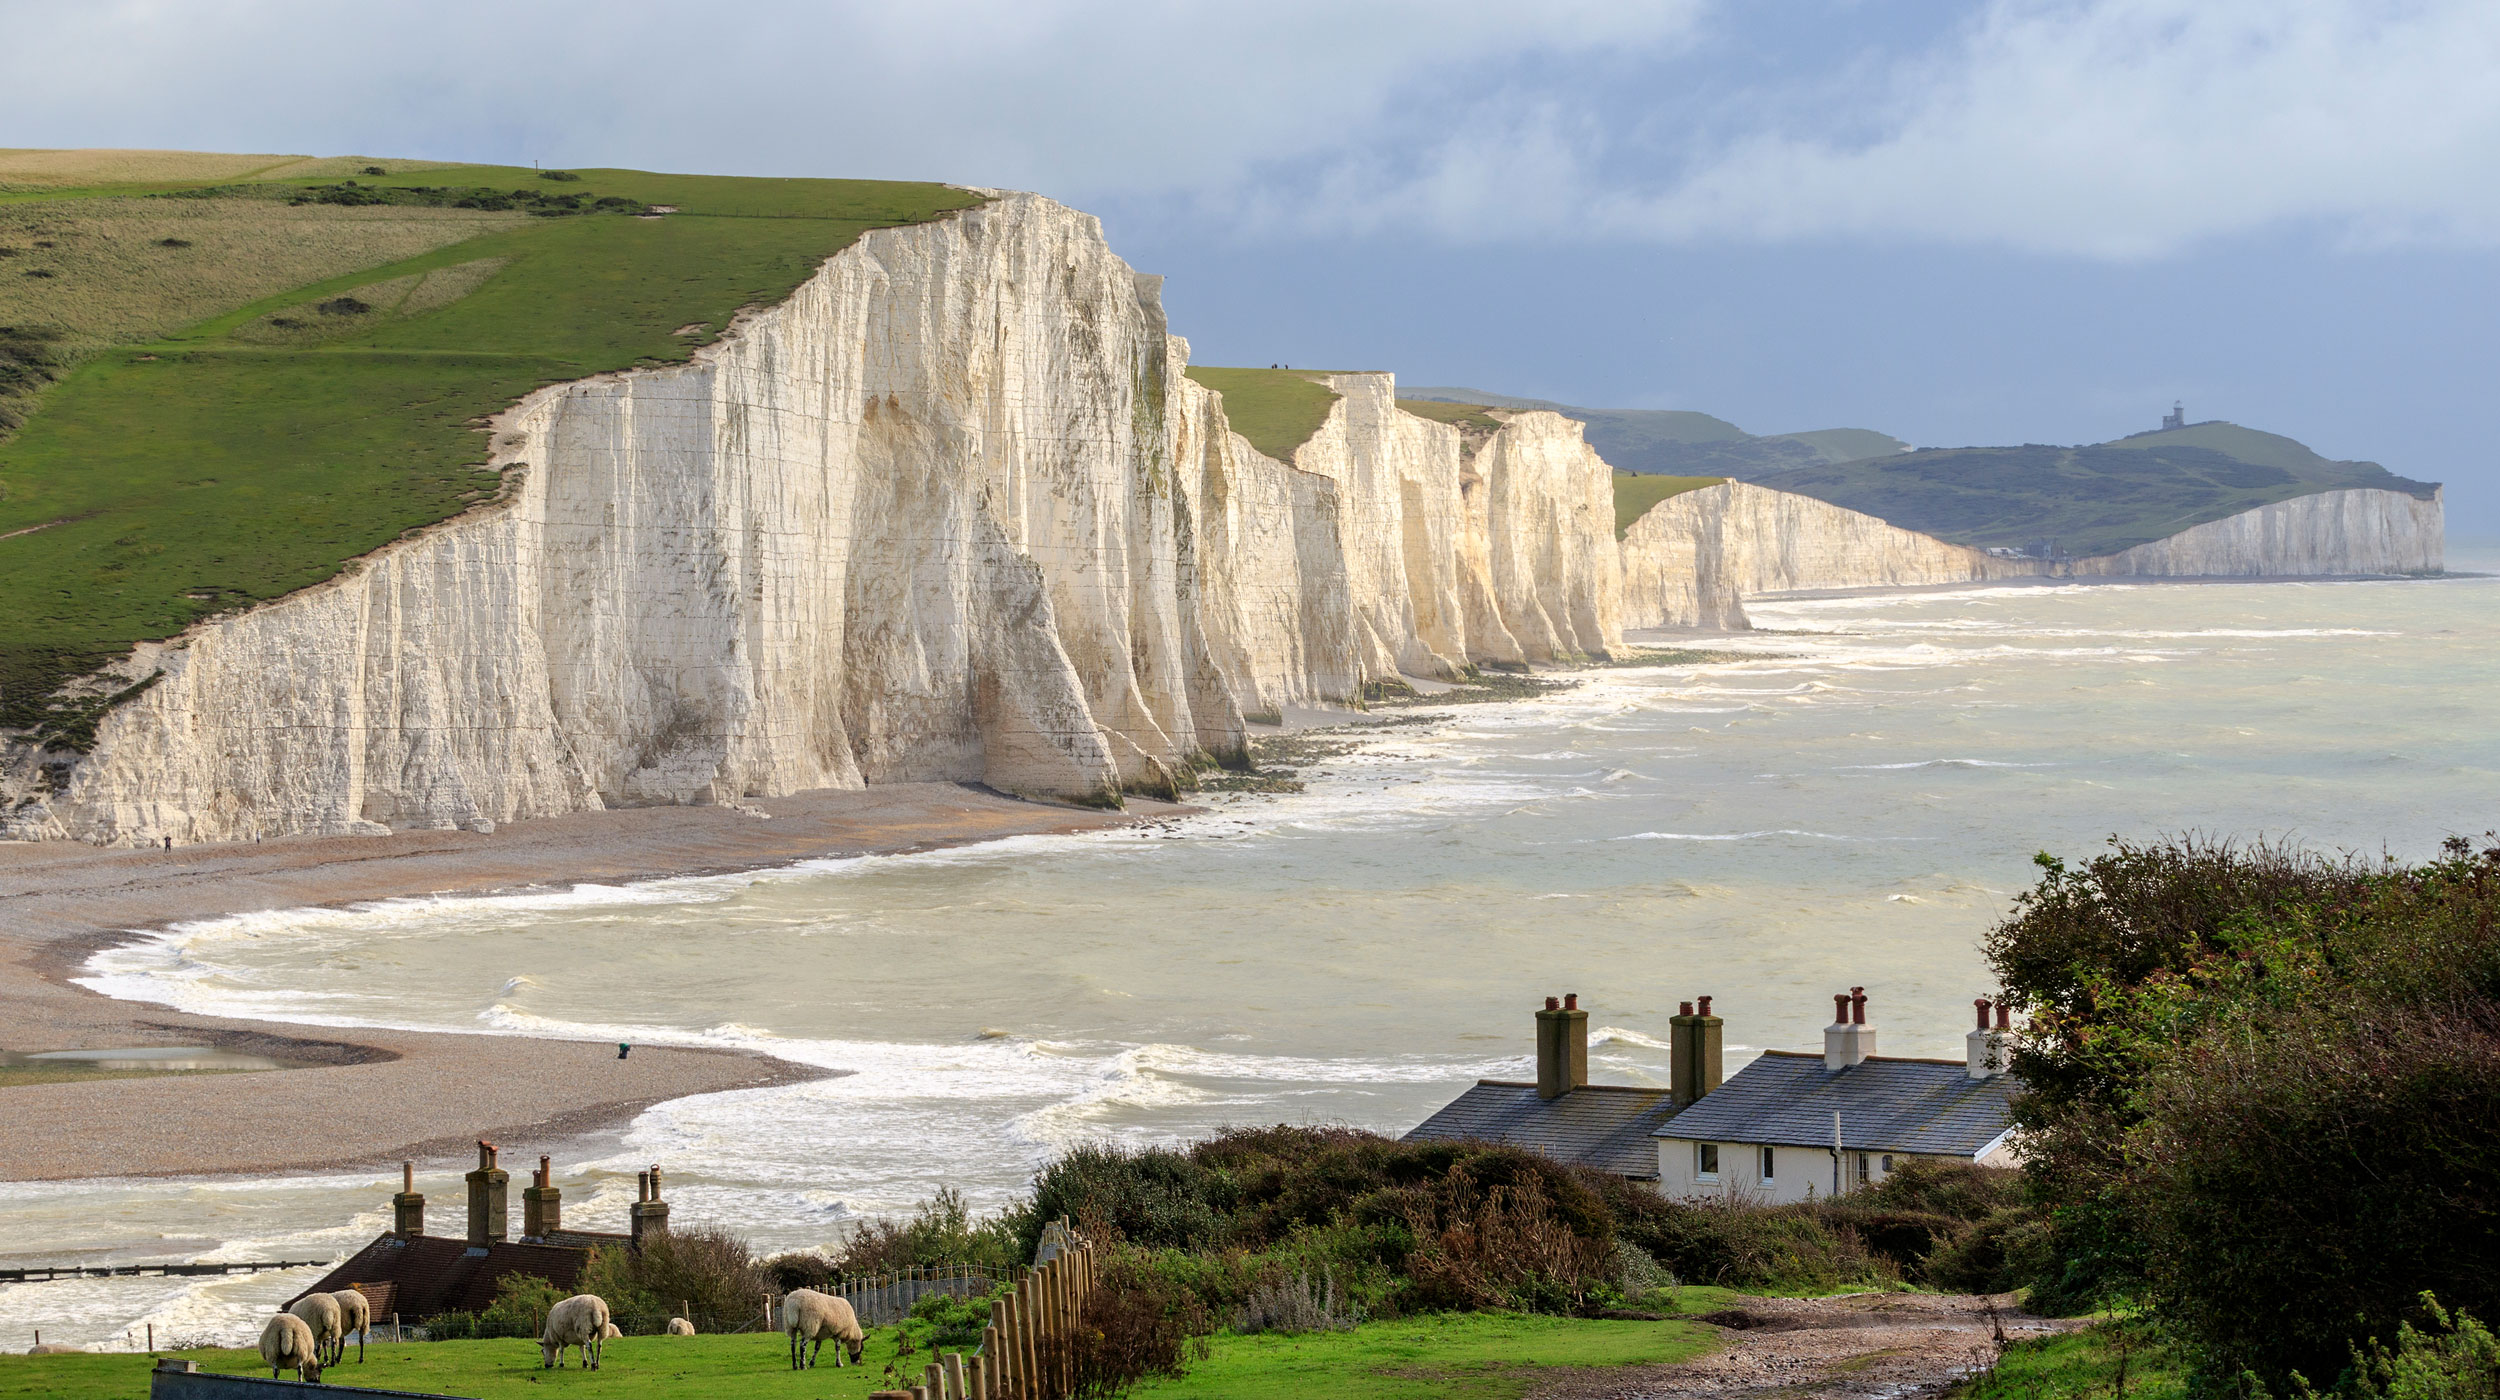 Seven Sisters, a set of cliffs by the English Channel in East Sussex.